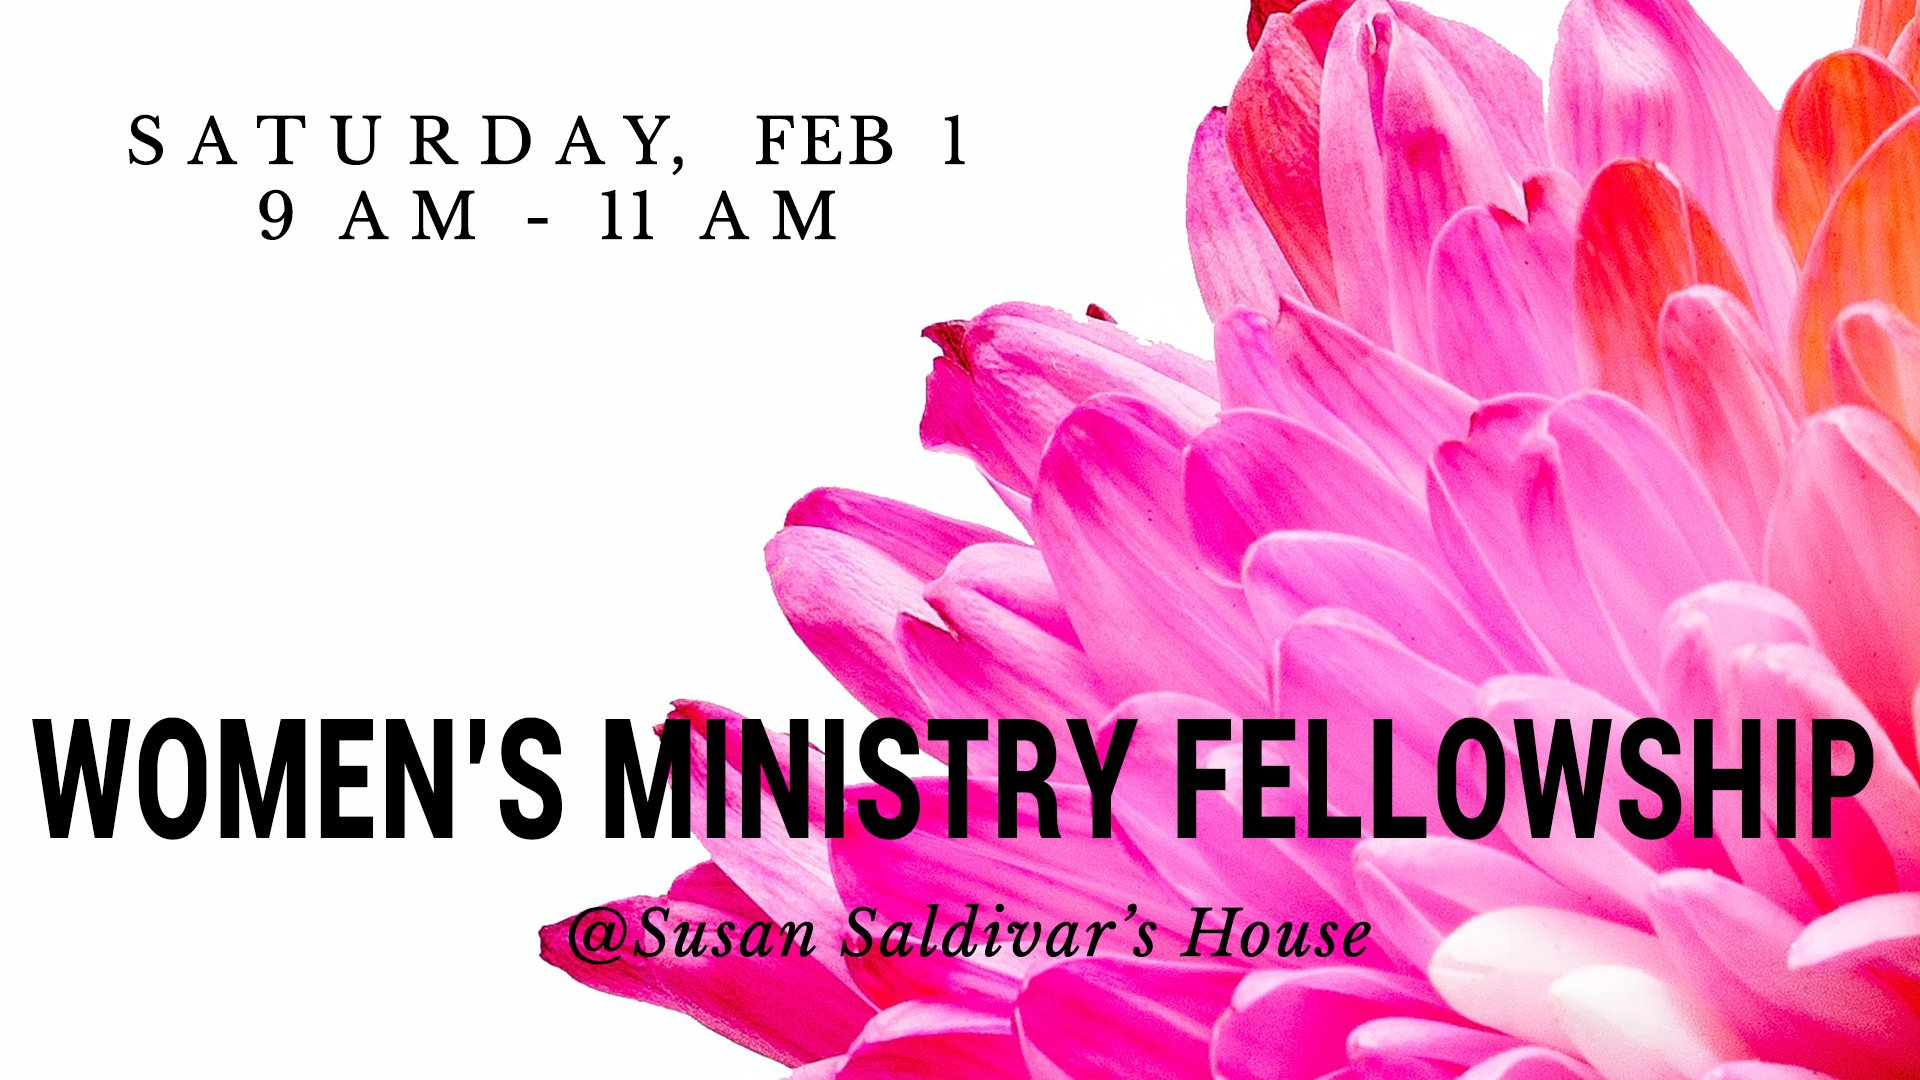 Ladies, our next Women's Ministry Fellowship is Saturday, Mar 7 at 9 AM - Susan Saldivar's house